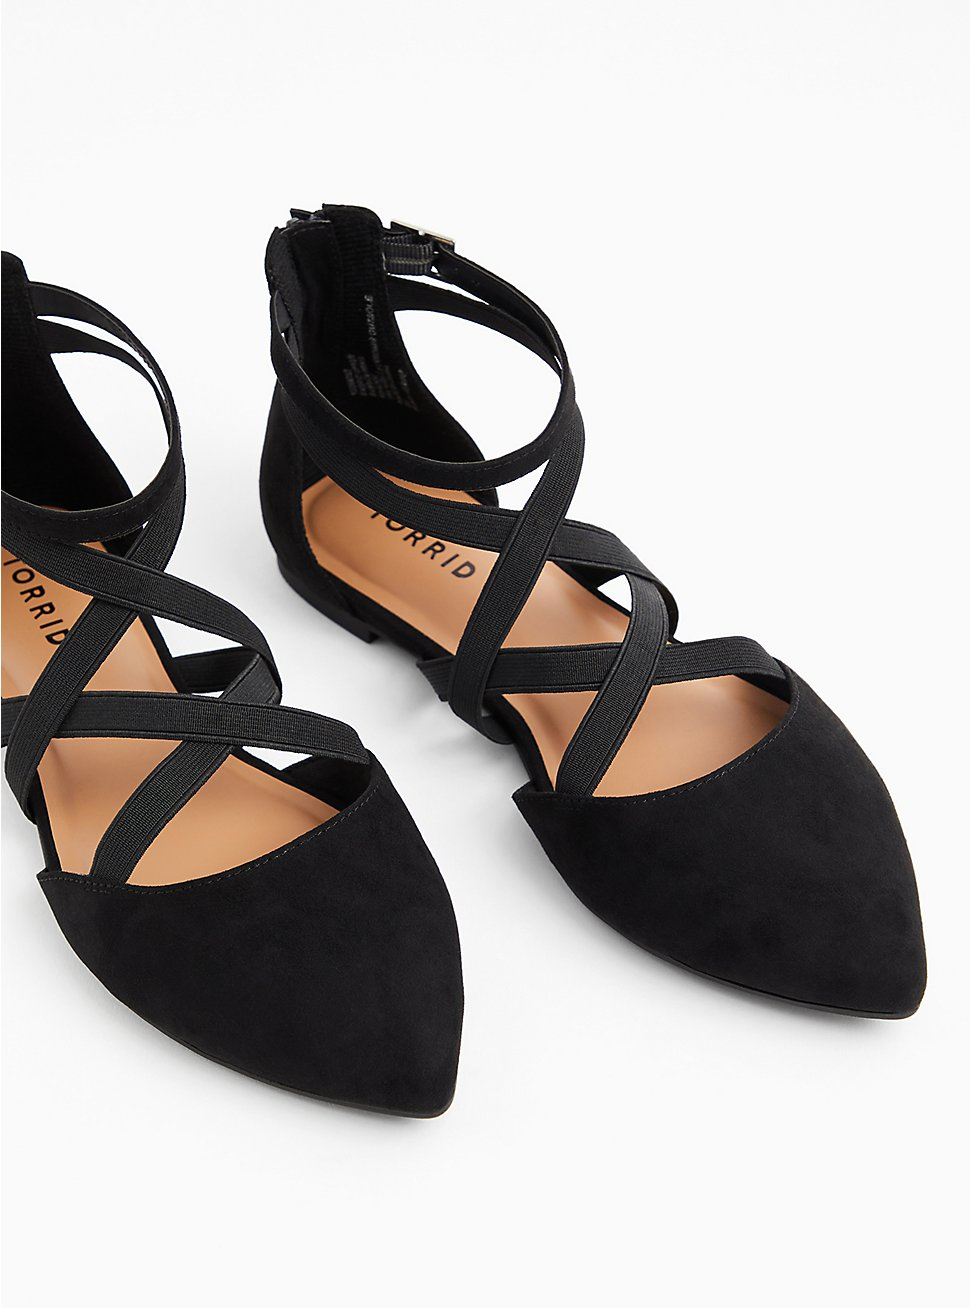 Black Faux Suede Elastic Strap Pointed Toe Flat (WW), BLACK, hi-res